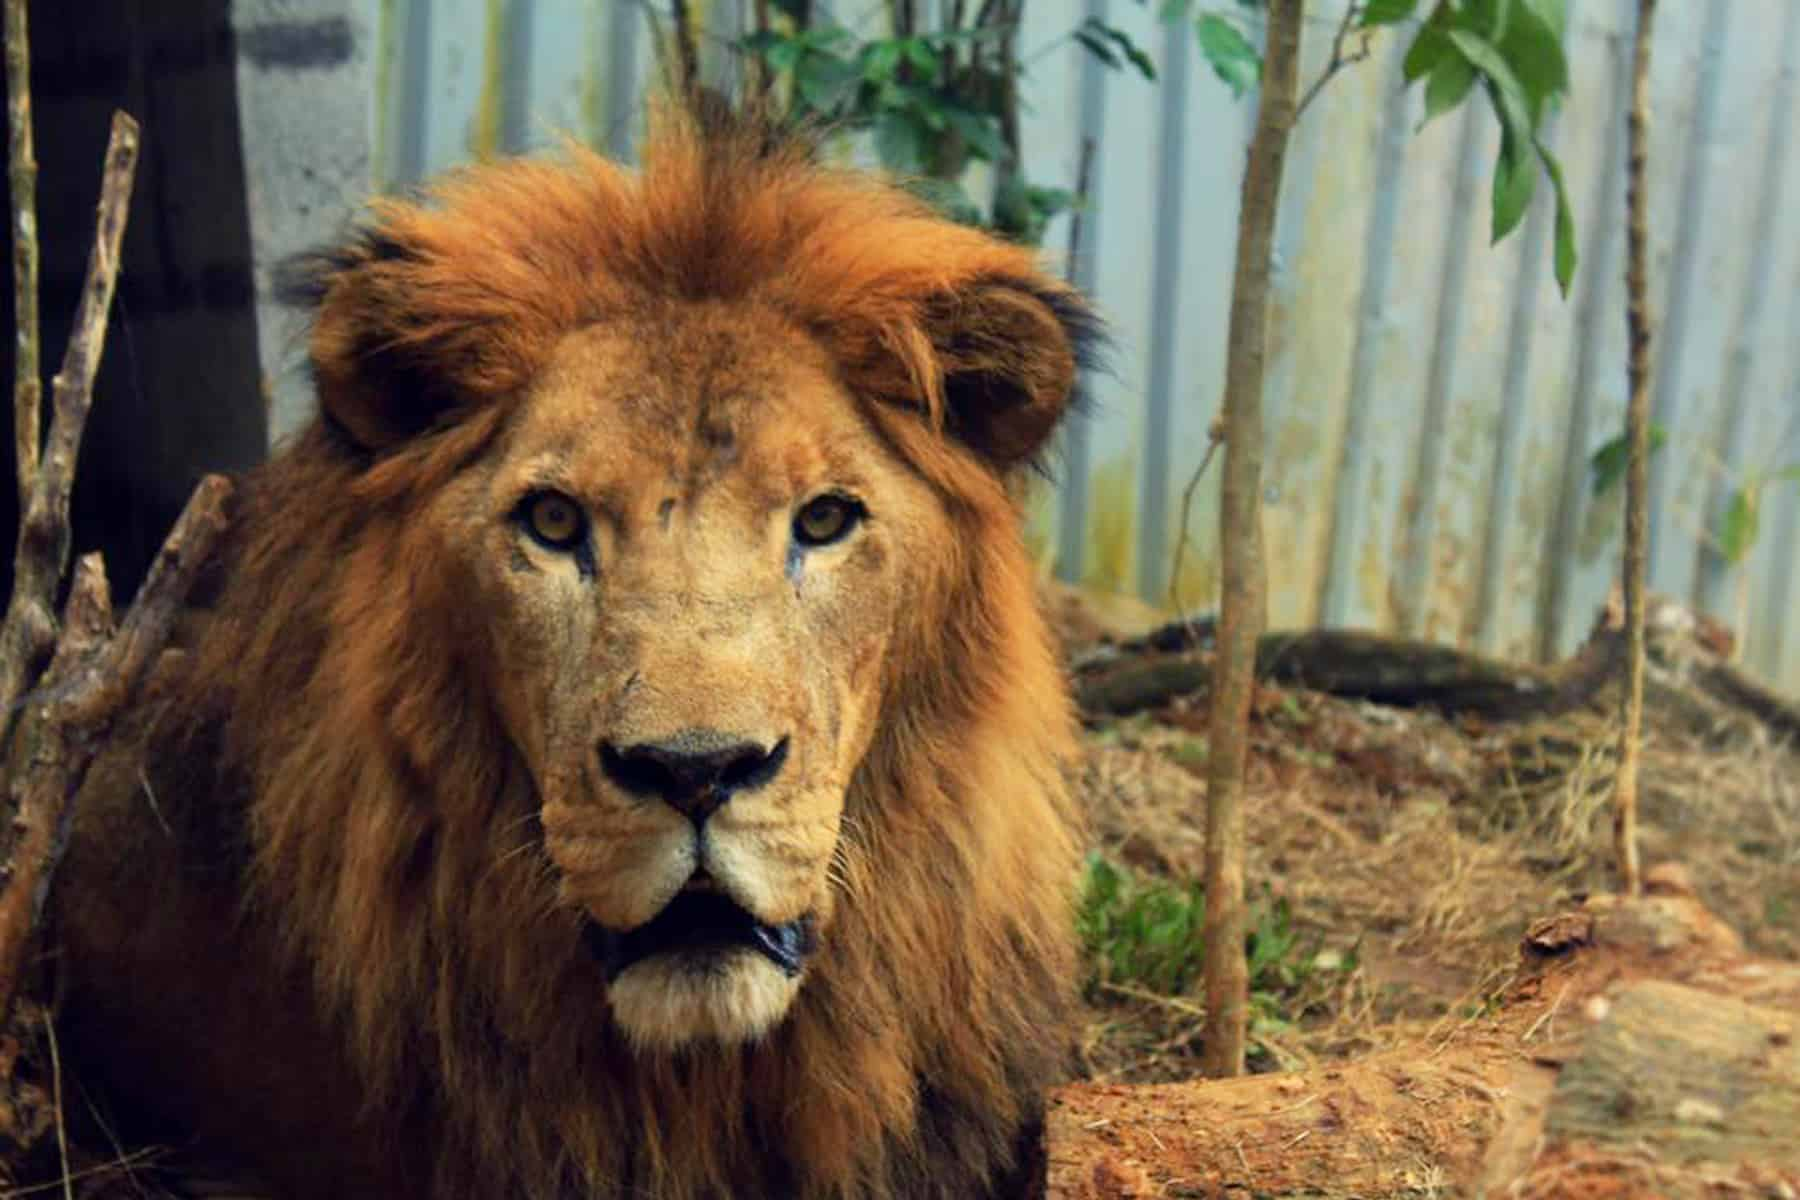 Kivú the lion. Feb 19, 2017